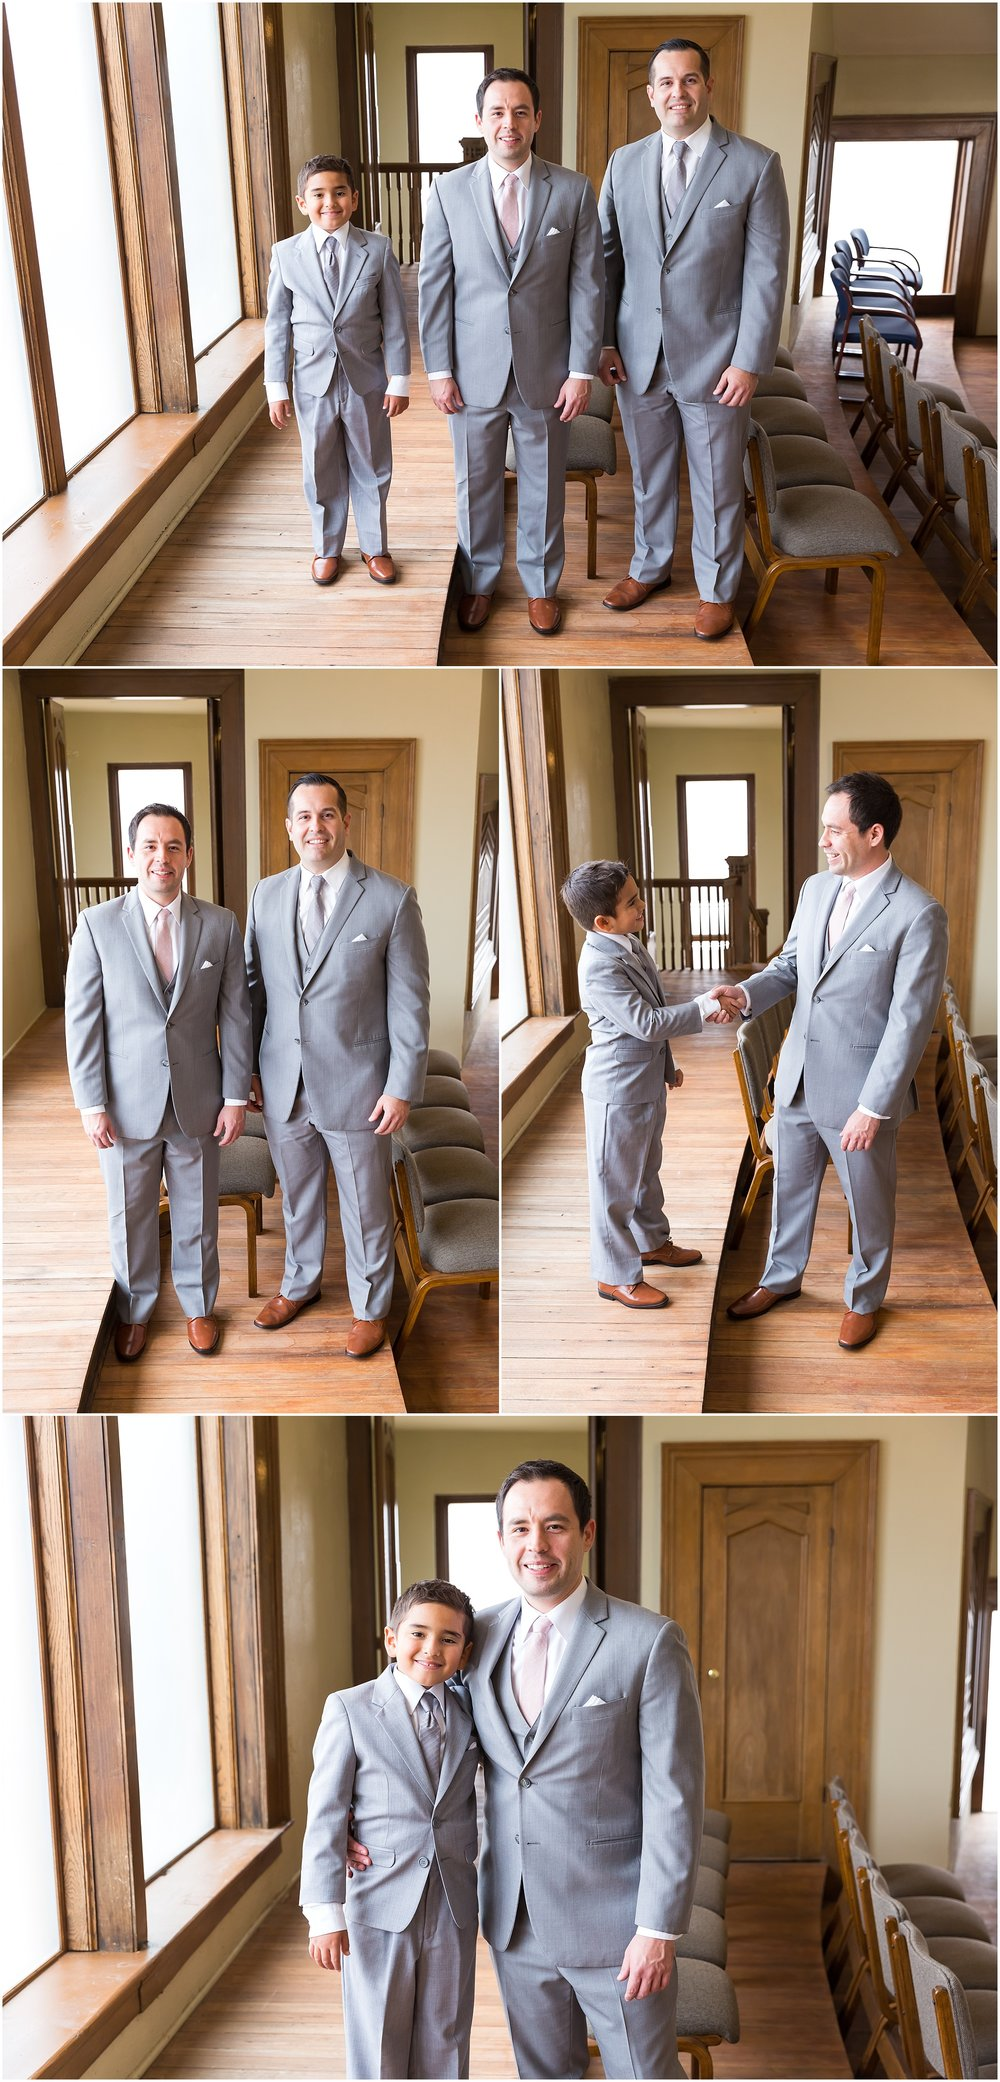 Groom poses with his son before classic church wedding at The Chapel at Meyer Center in Waco, Texas - Jason & Melaina Photography - www.jasonandmelaina.com